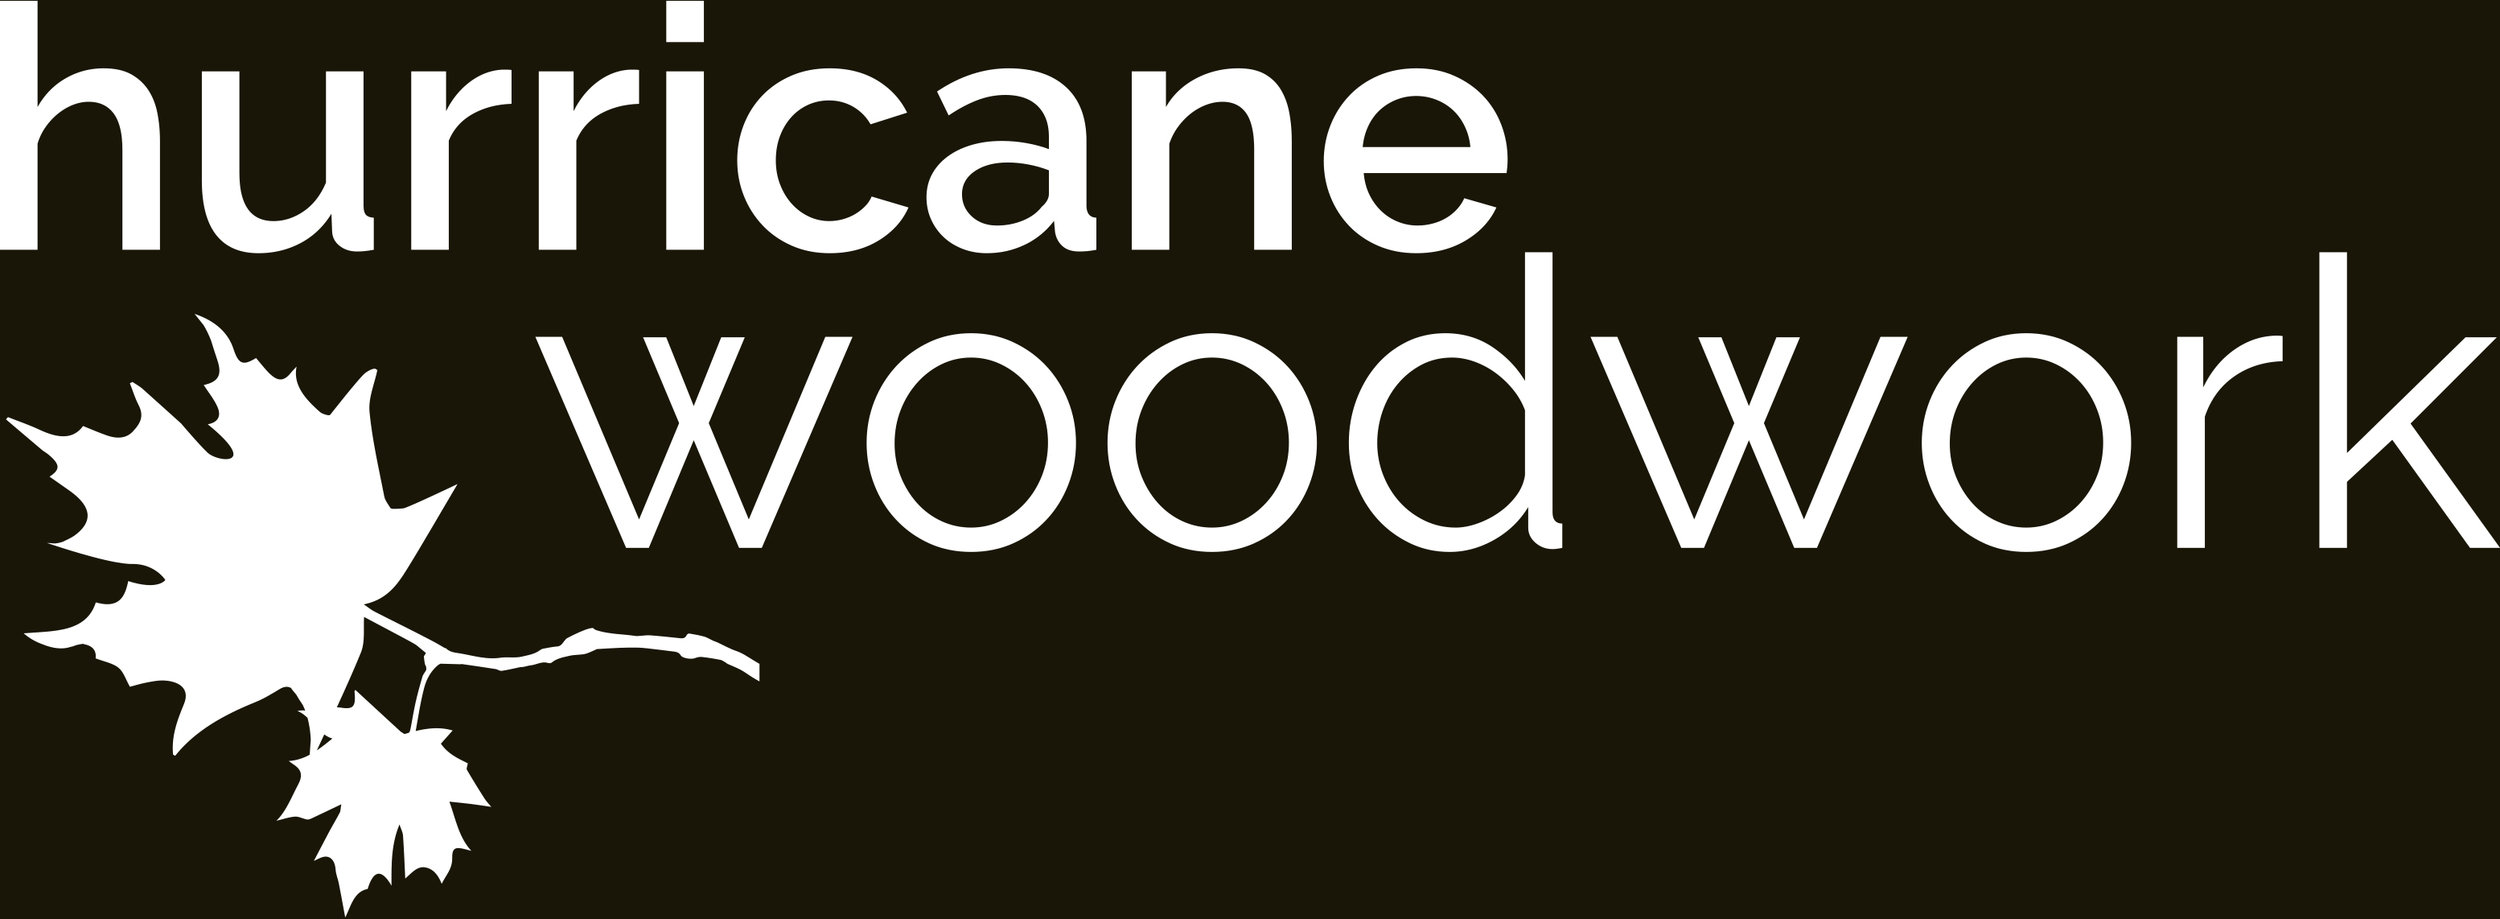 Hurricane-Woodwork_logo.jpg